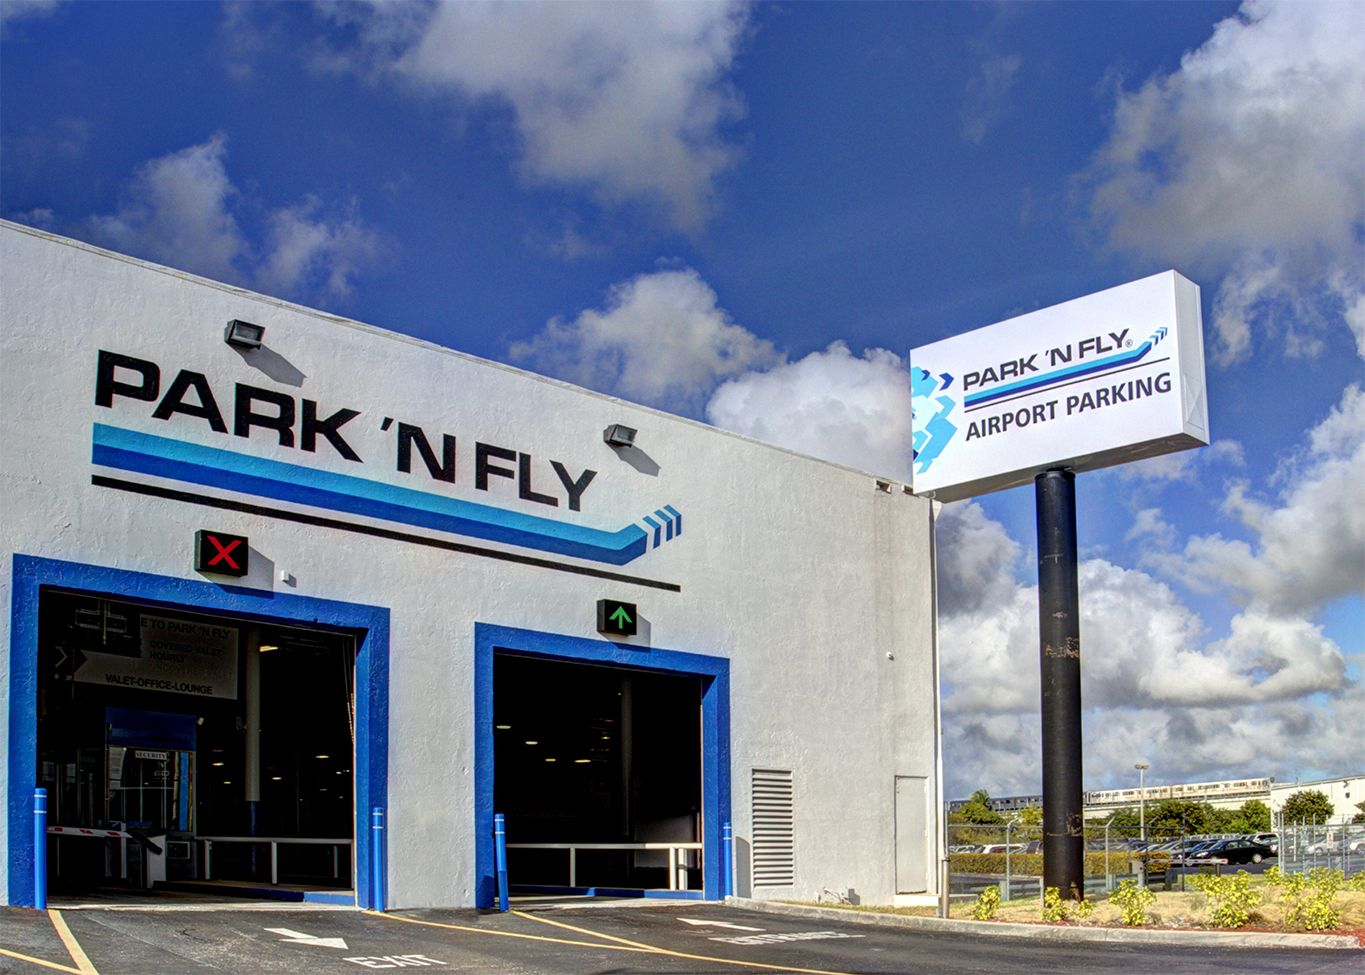 Park 'N Fly Miami Miami airport, Airport parking, Park s